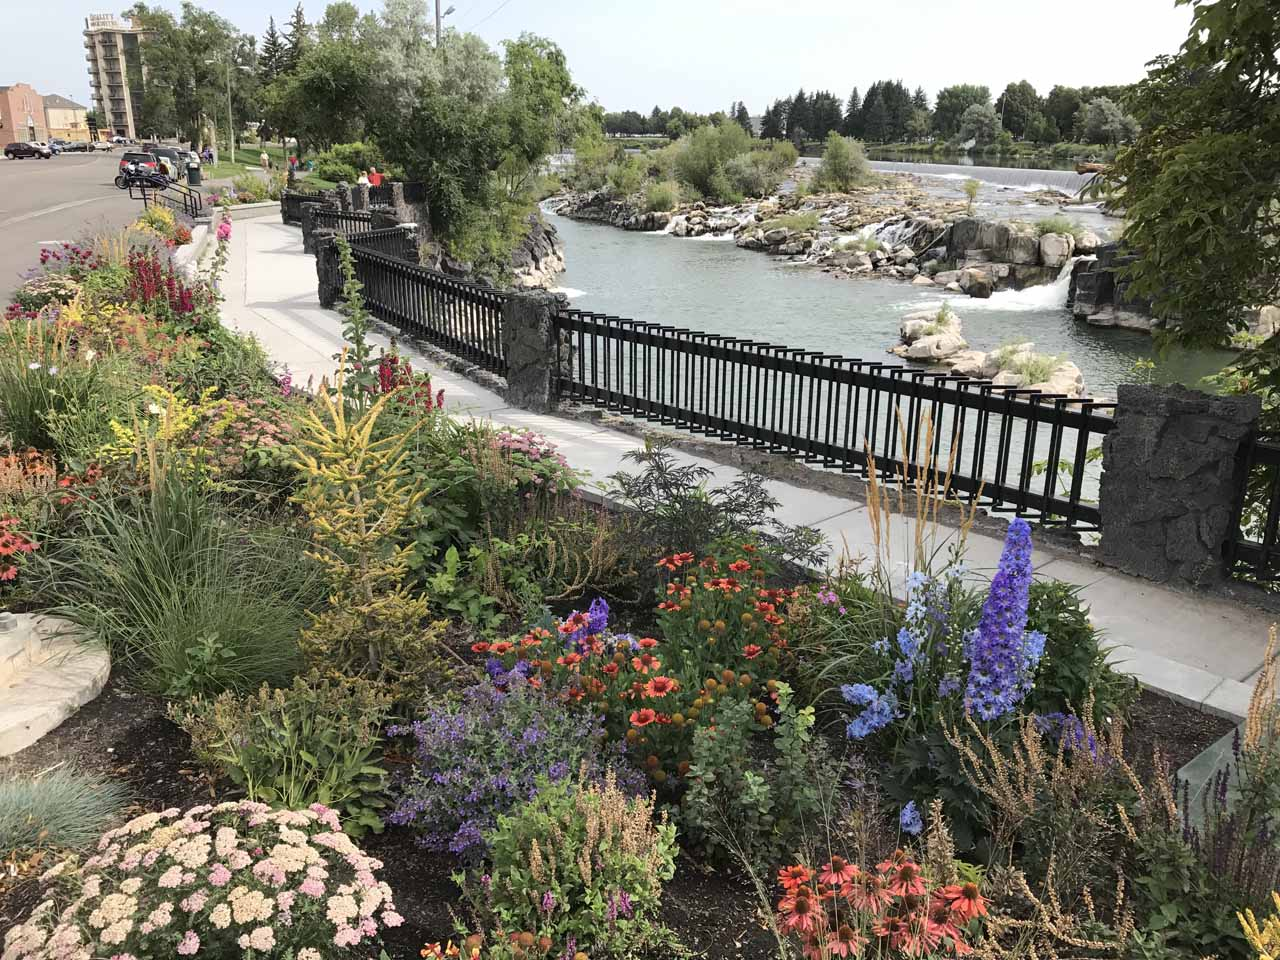 Context of some flowers fronting the viewing area for Idaho Falls